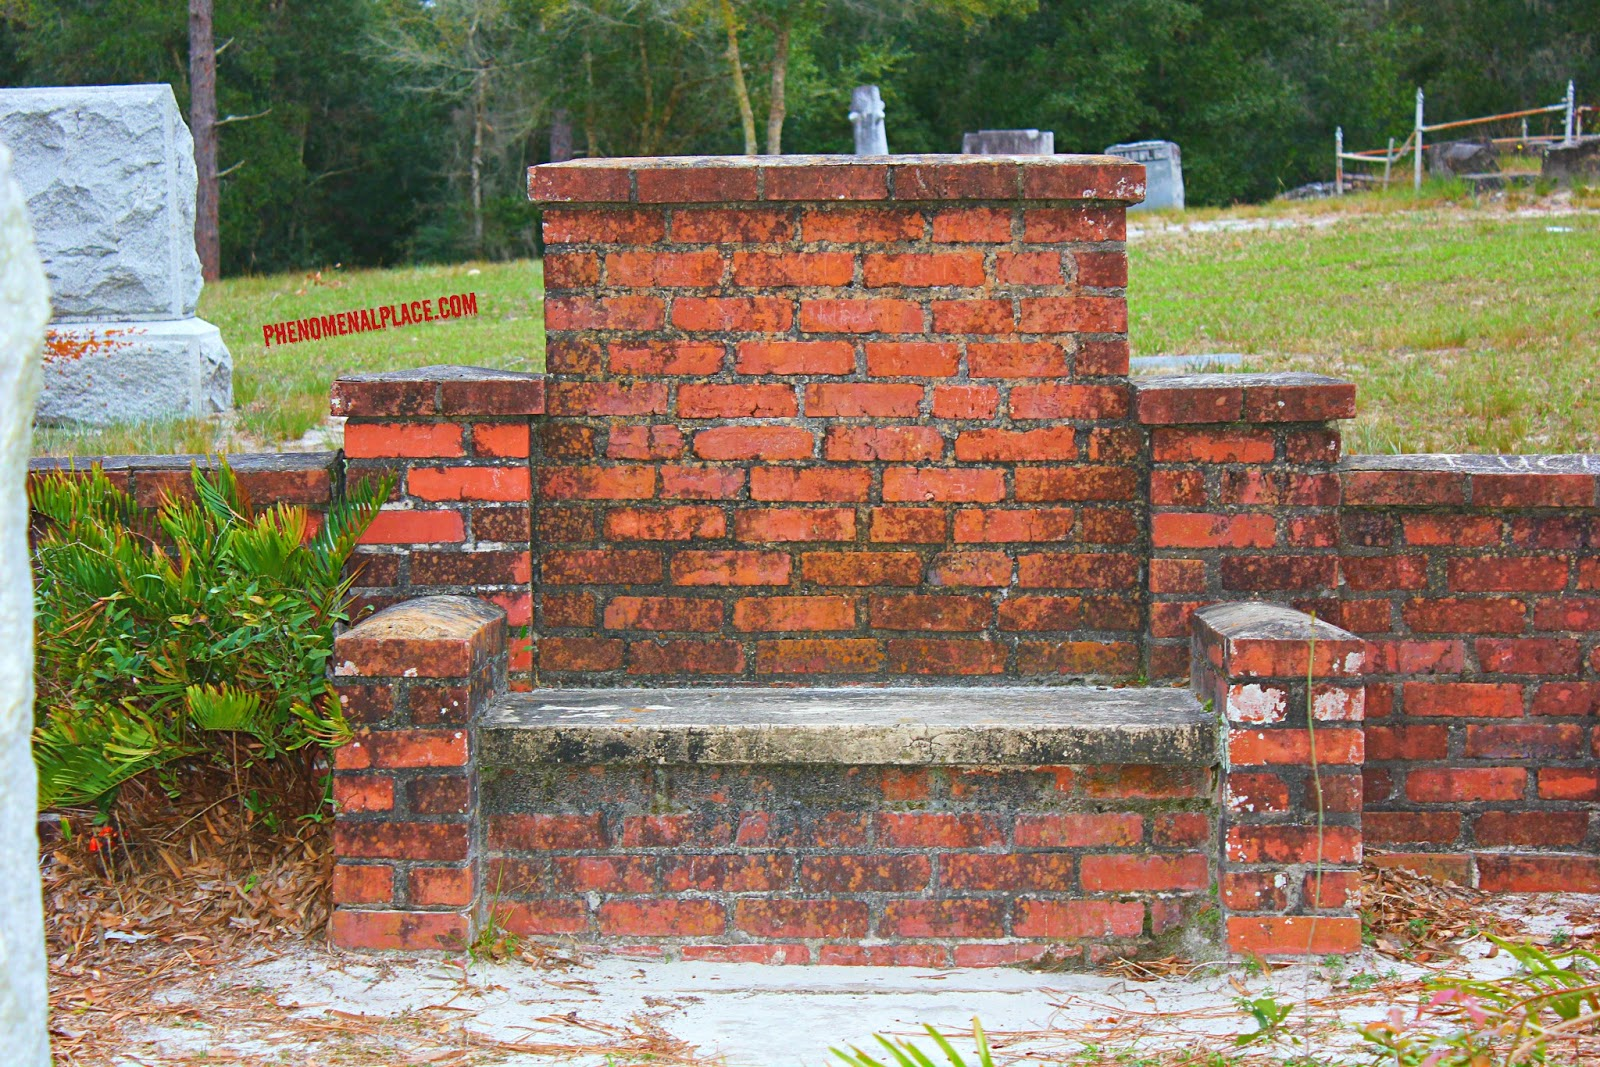 devils chair in florida is often visited by ghost hunters and paranormal experts - Cassadaga Halloween